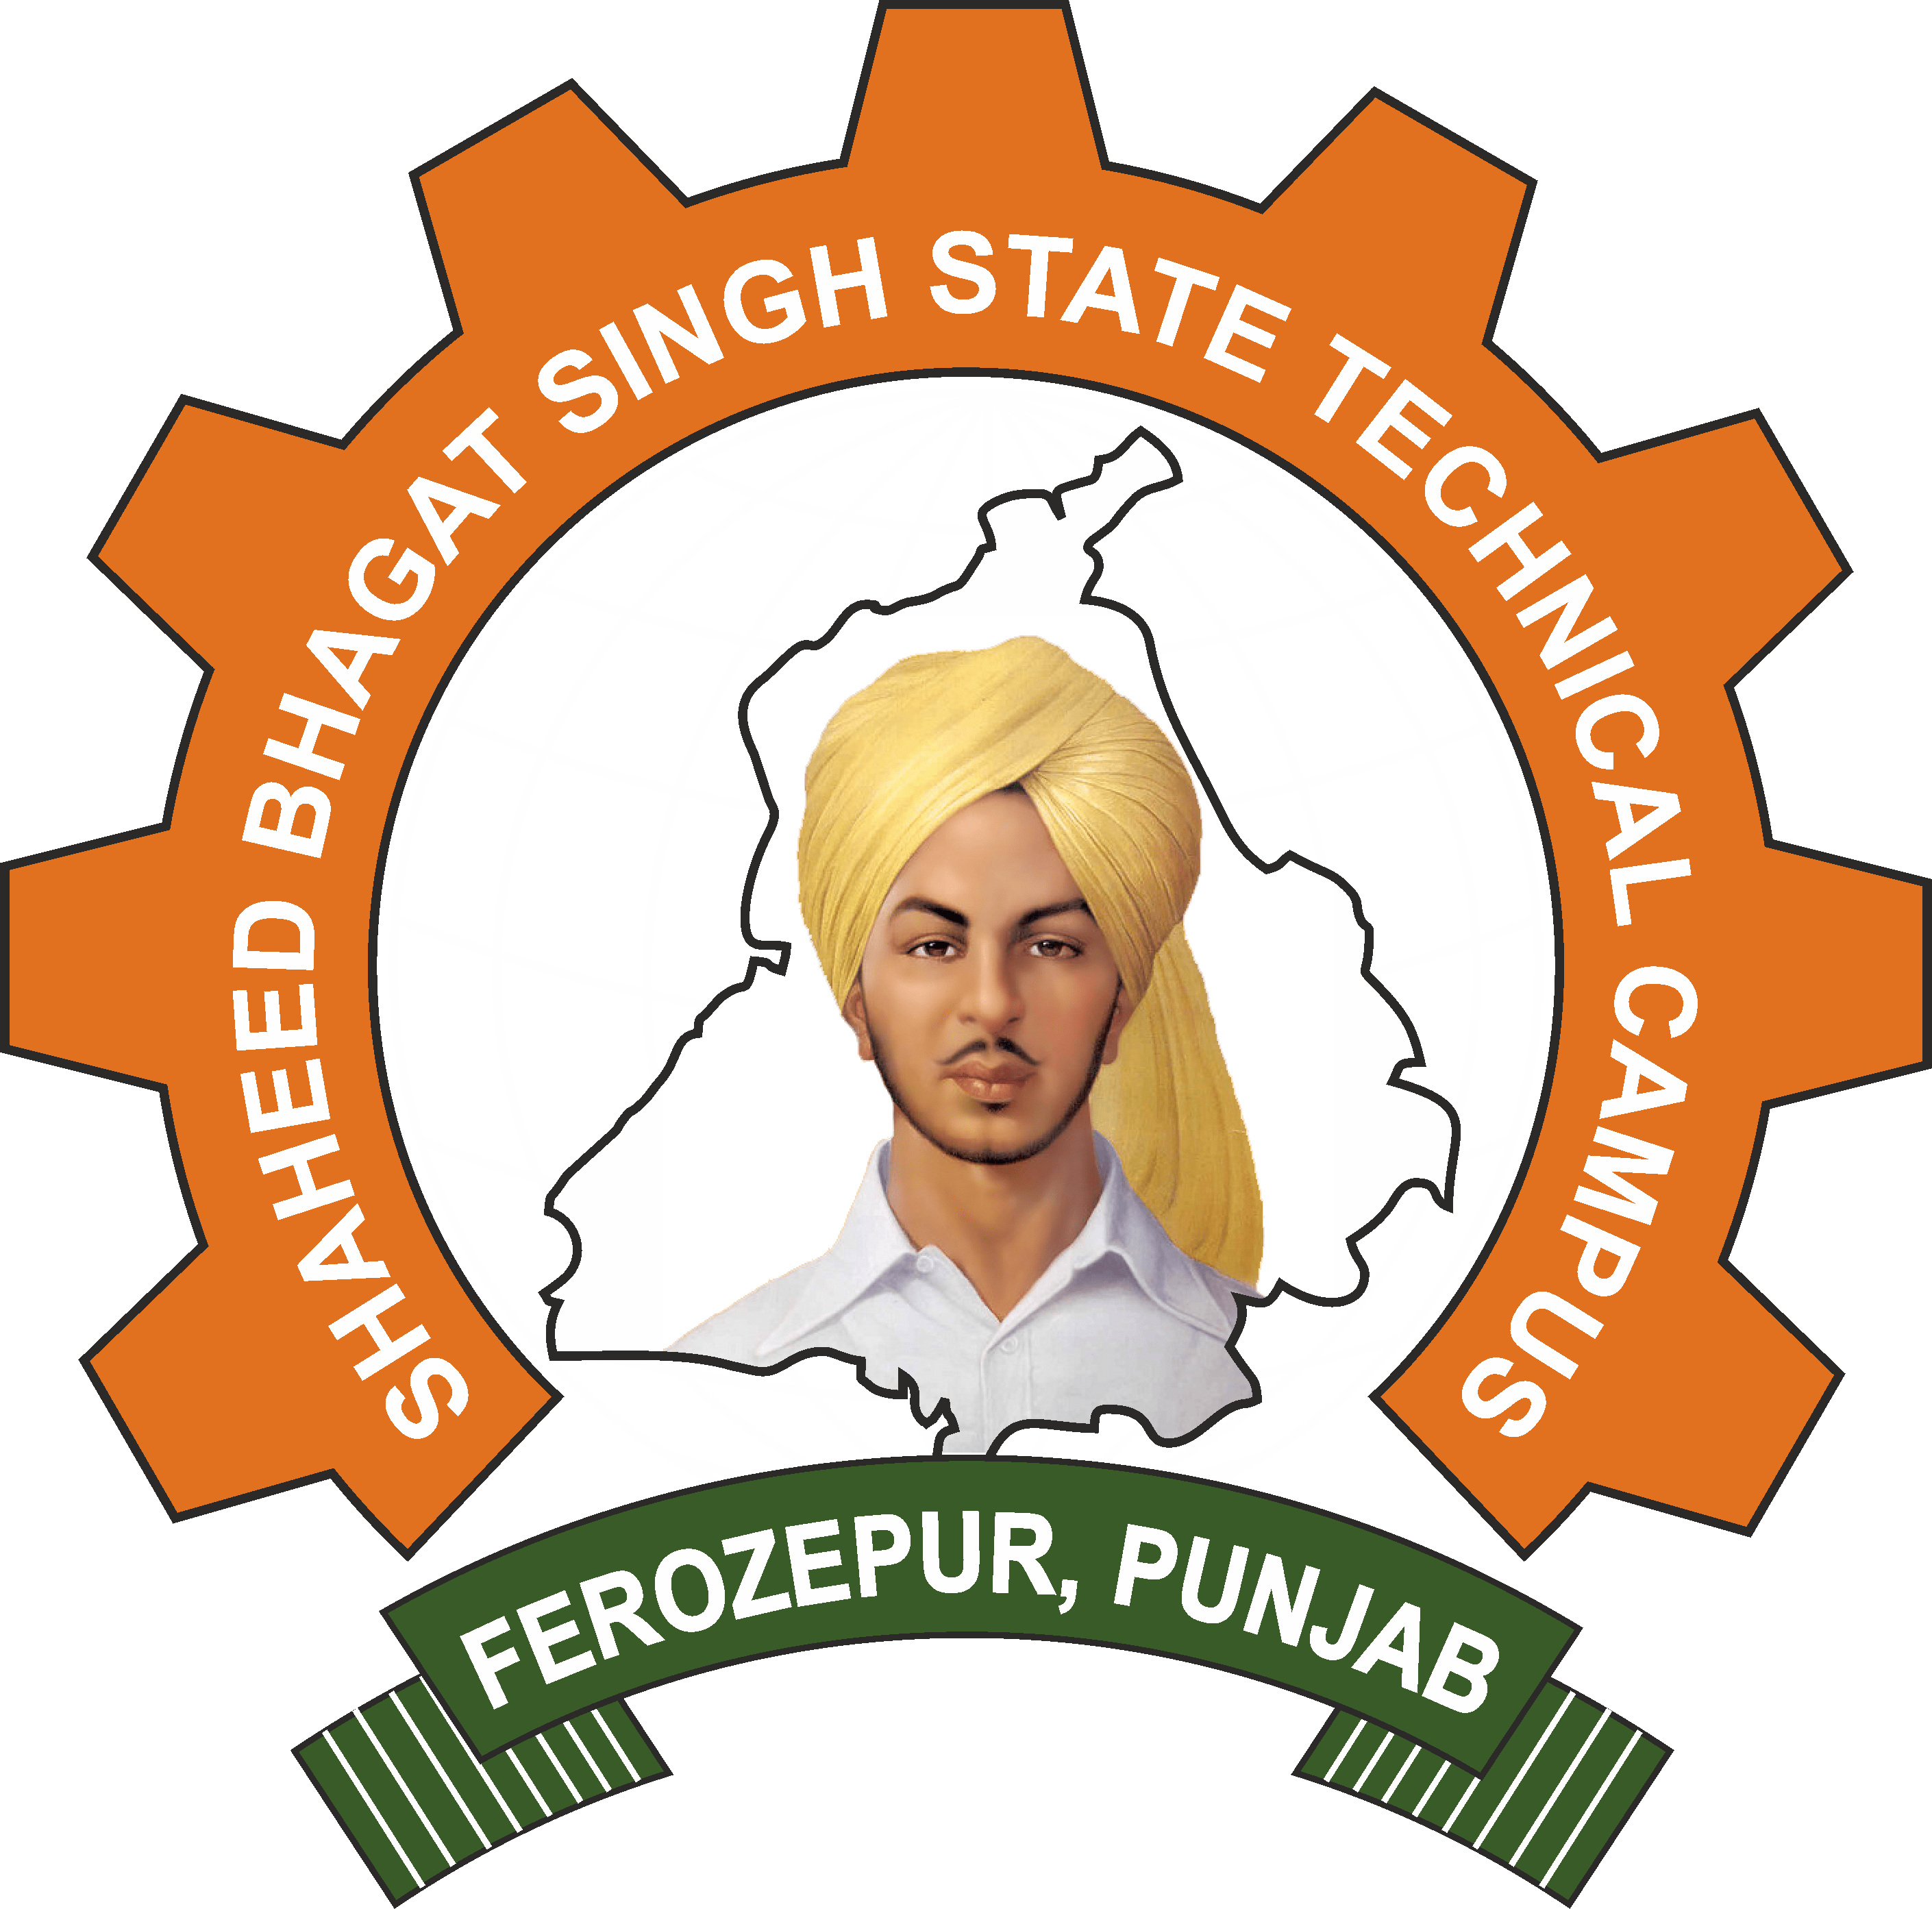 Shaheed Bhagat Singh College (SBSC College)